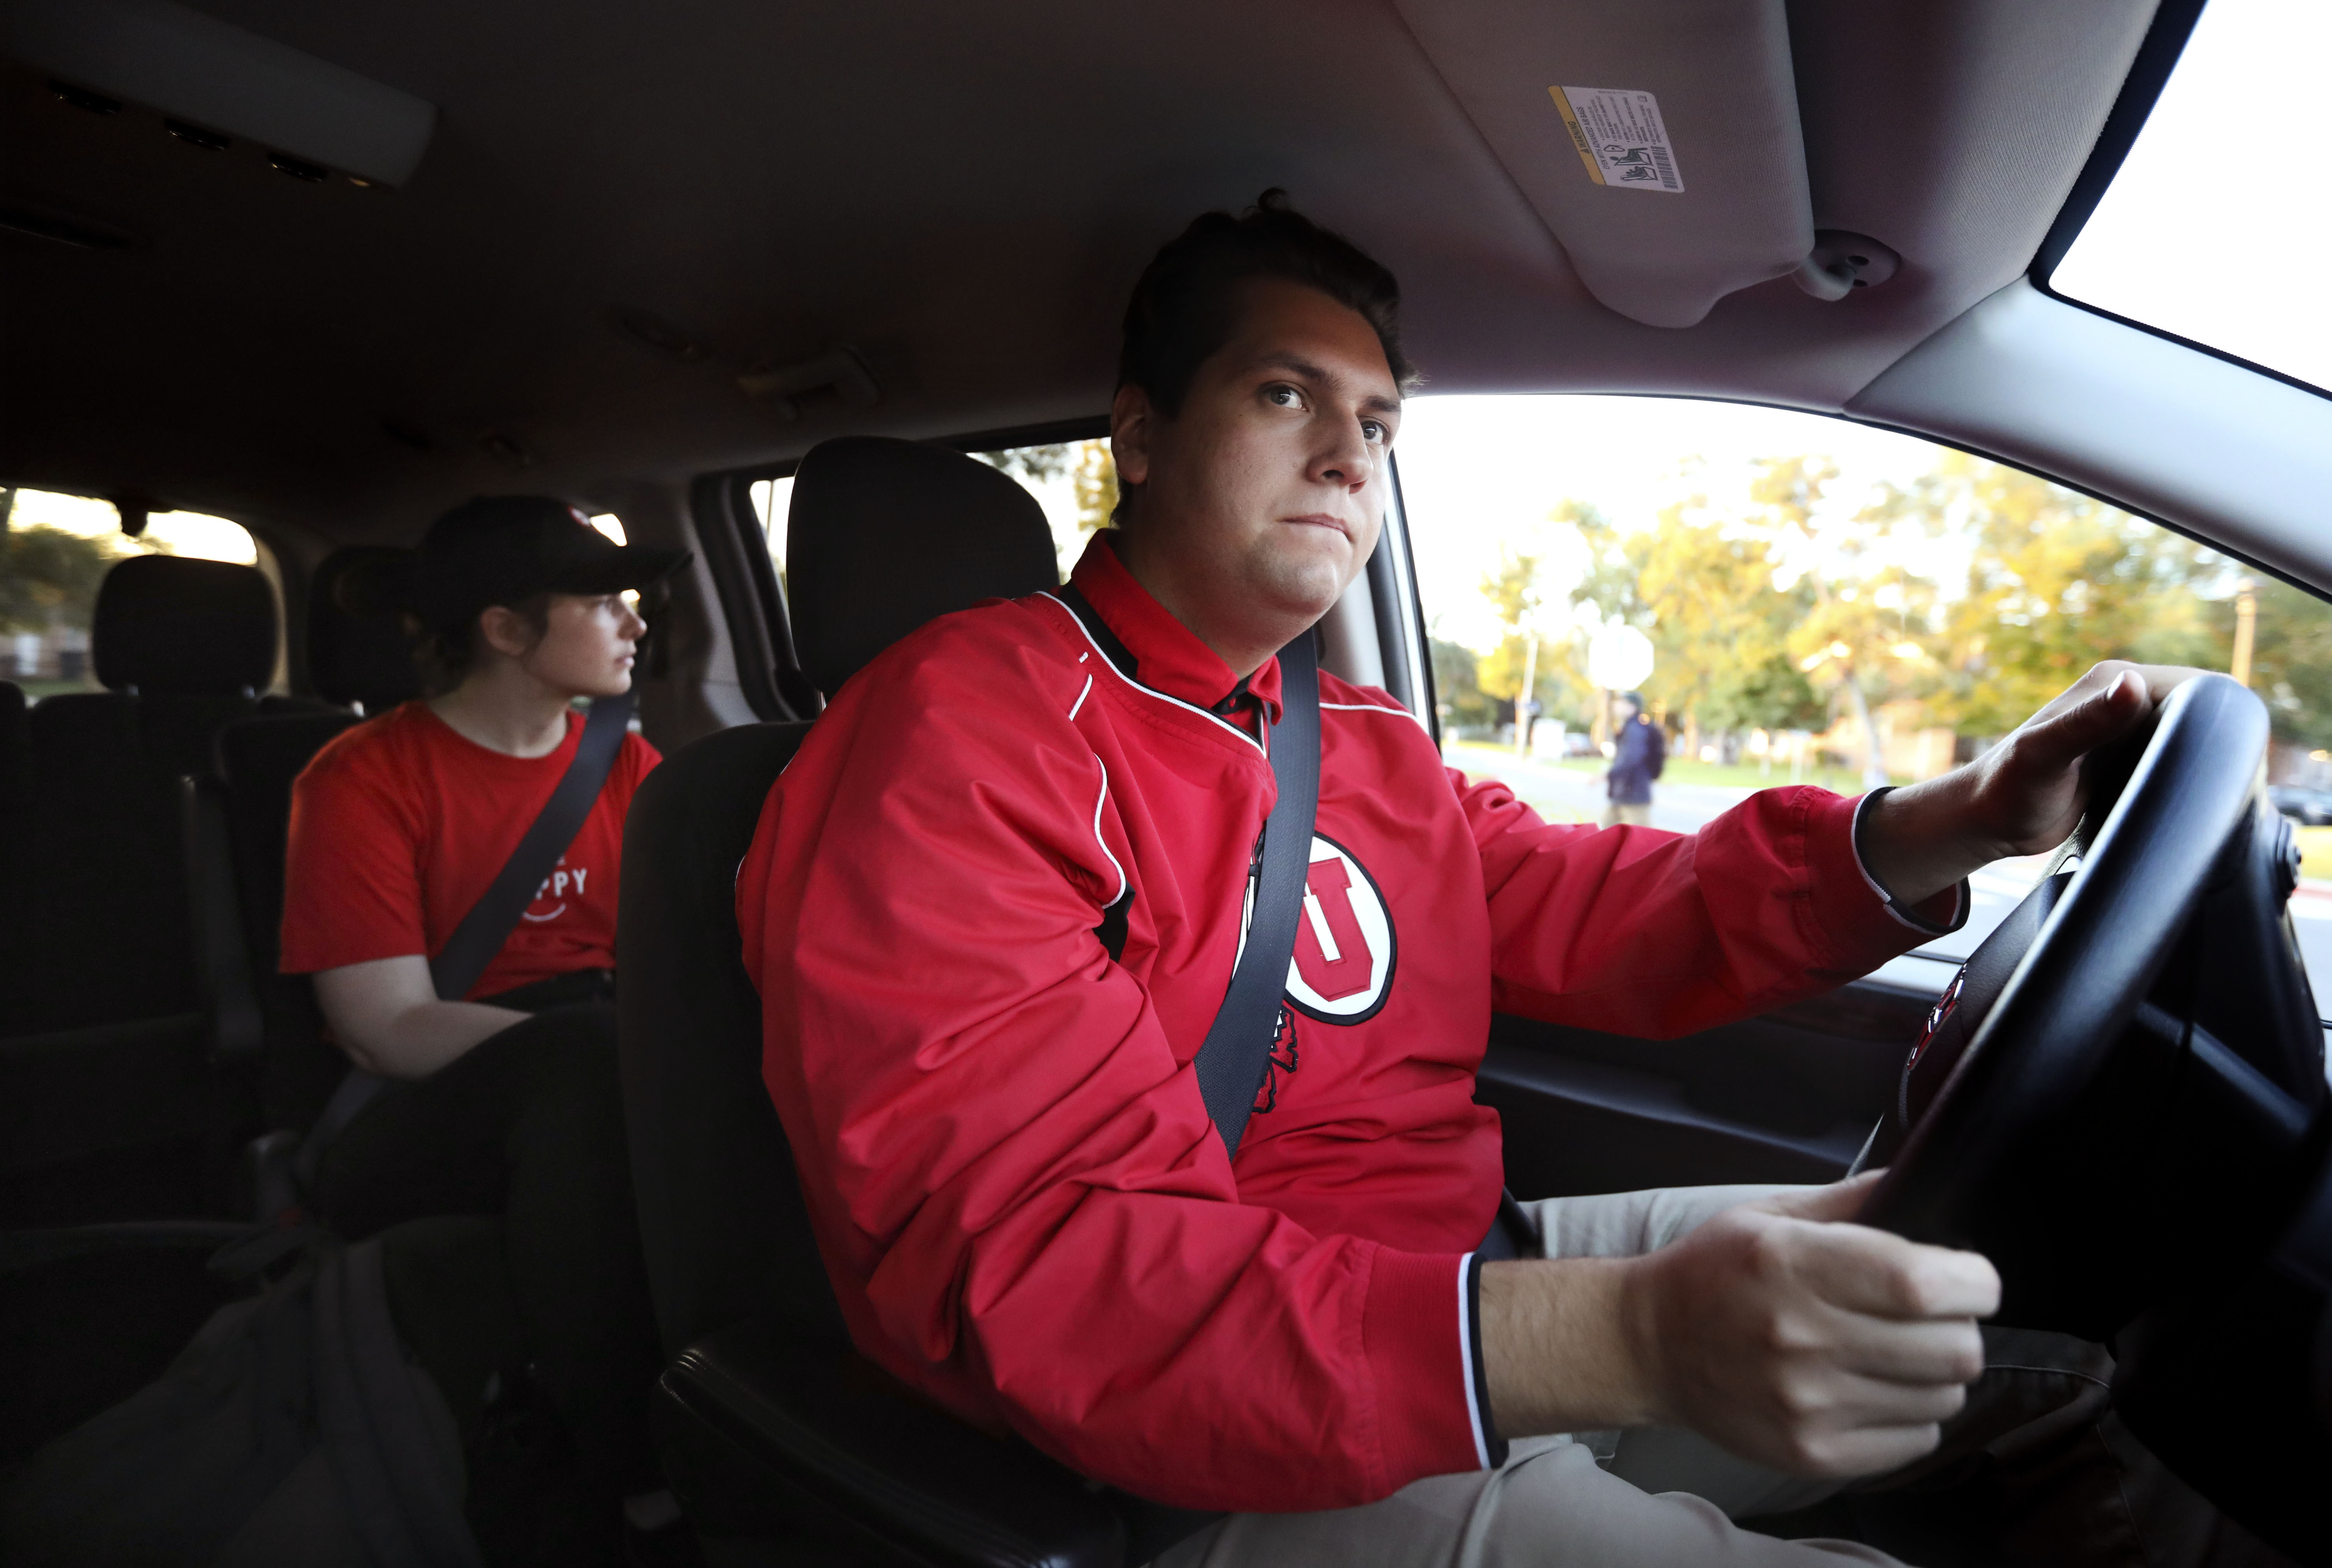 SafeRide driver Robert Witkop drives third-year student Hannah Smith to her apartment at the Shoreline Ridge student housing in Salt Lake City on Wednesday, Oct. 2, 2019. SafeRide provides a safe and reliable mode of transportation on campus to ensure safety during night hours. The university says the service is available to anybody in the university community, but they stress it is especially meant to serve students on campus at night who need a safe ride to a parking lot, student housing or to another building on campus. The idea was brought forth by students on the University's Safety Task Force assembled by U. President Ruth Watkins after student-athlete Lauren McCluskey was murdered on campus in October.